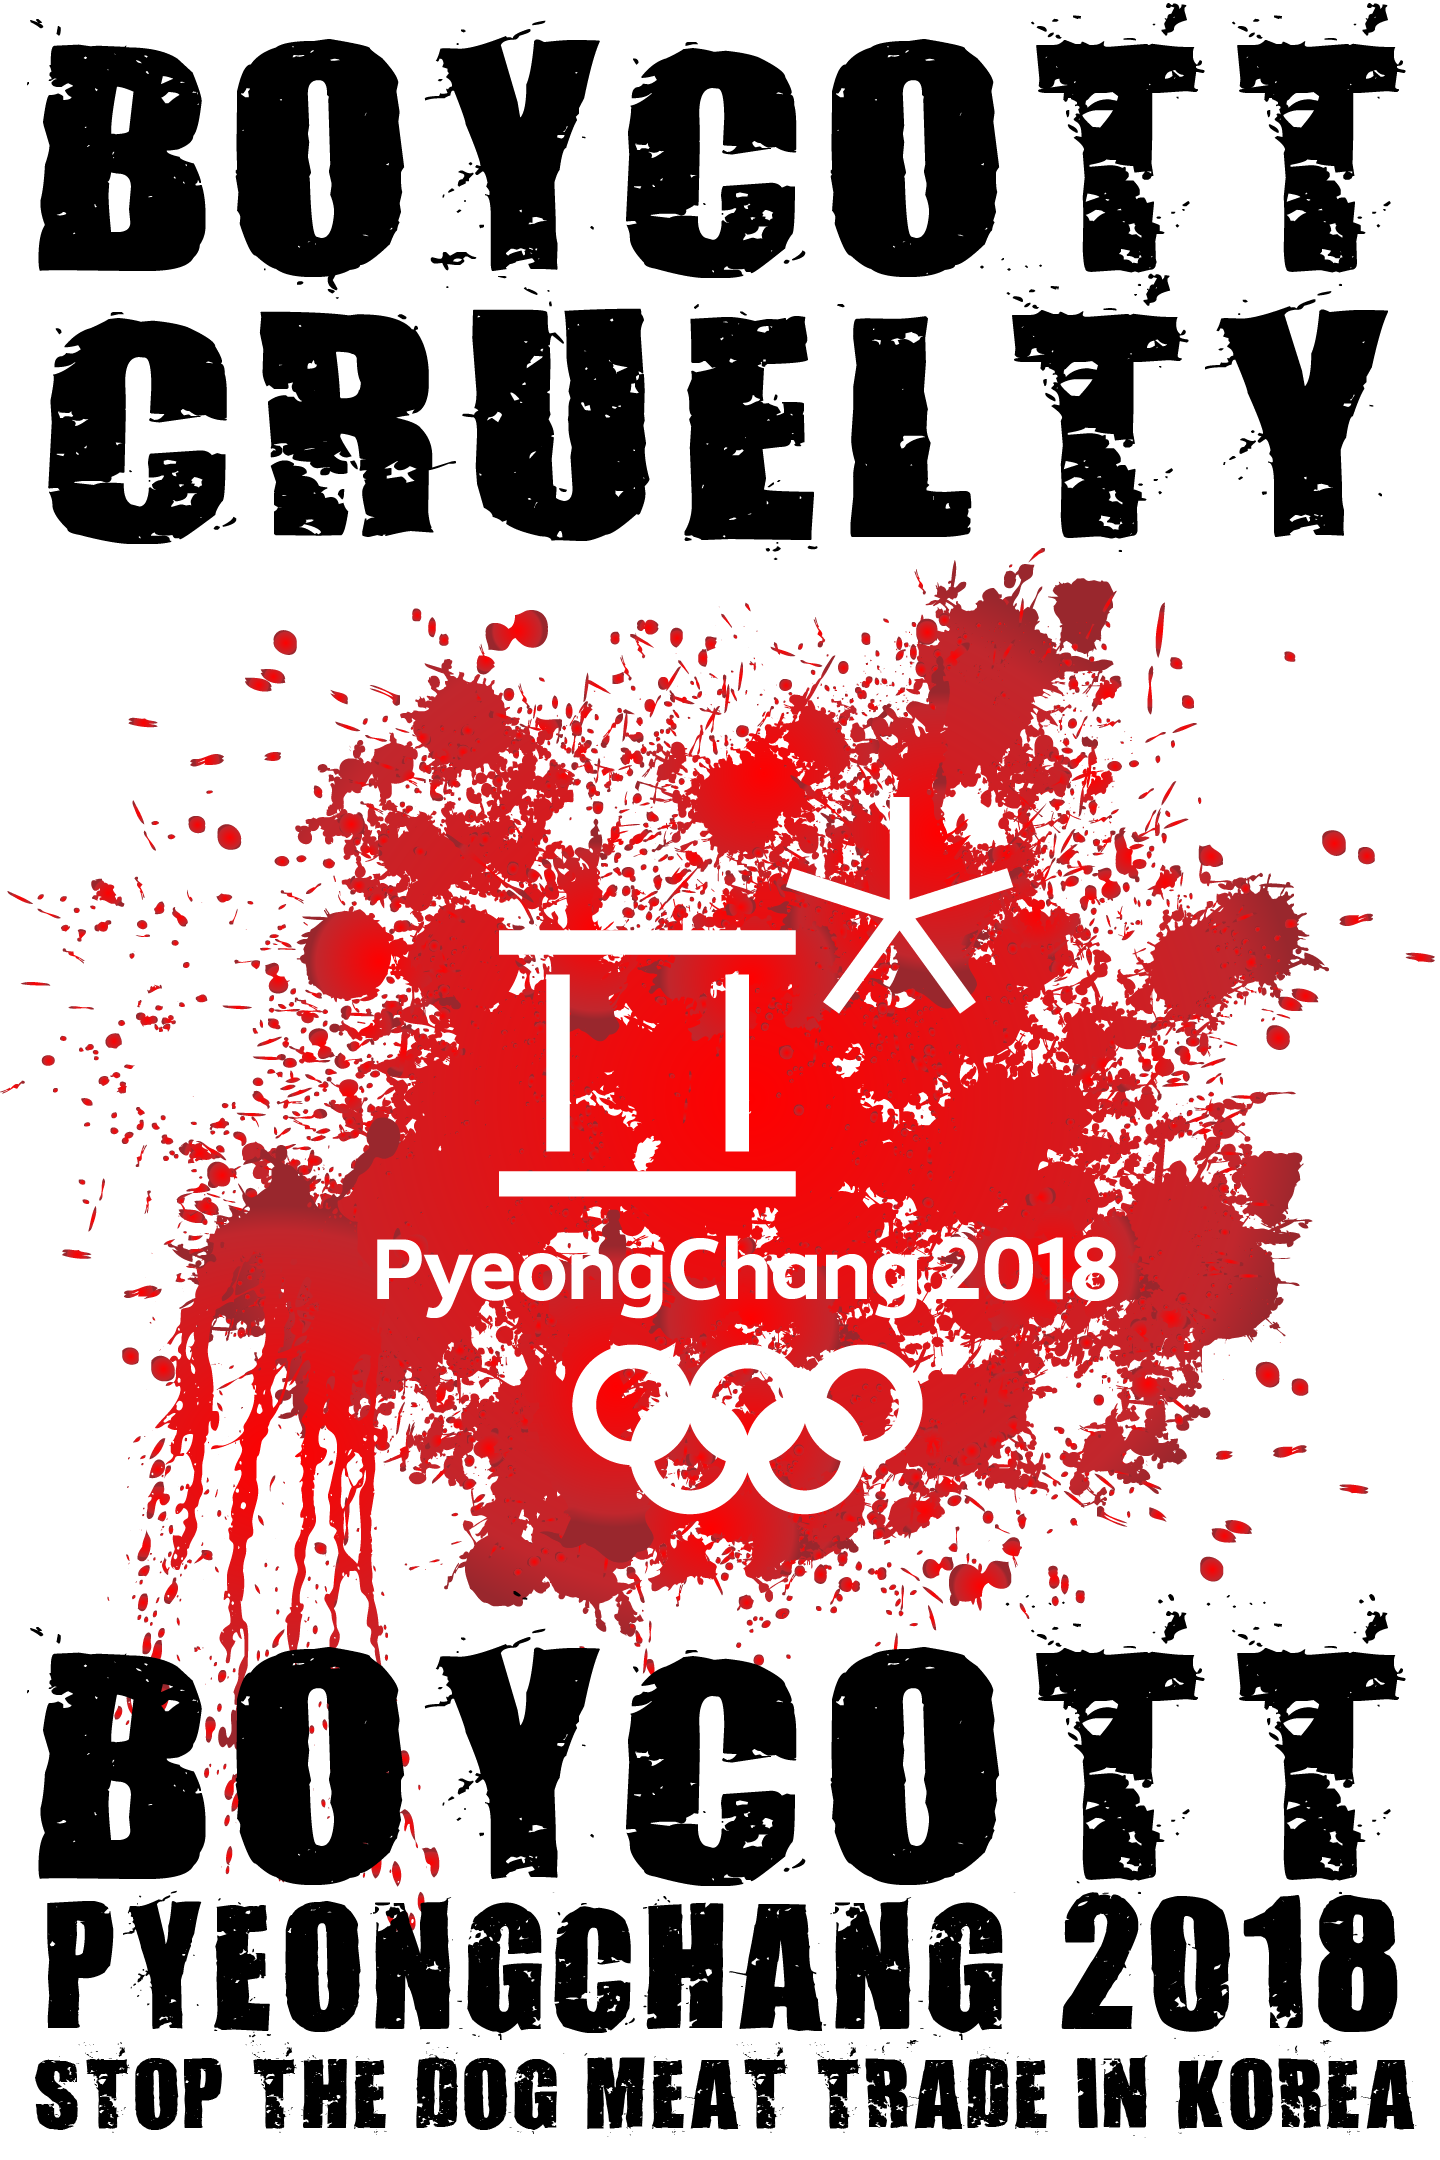 http://koreandogs.org/noc-take-a-stand/?utm_source=sendinblue&utm_campaign=The_Clock_is_Ticking!!__Olympic_Committees_Take_a_stand_in_Pyeongchang_2018_against_the_dog_and_cat_meat_trade!&utm_medium=email